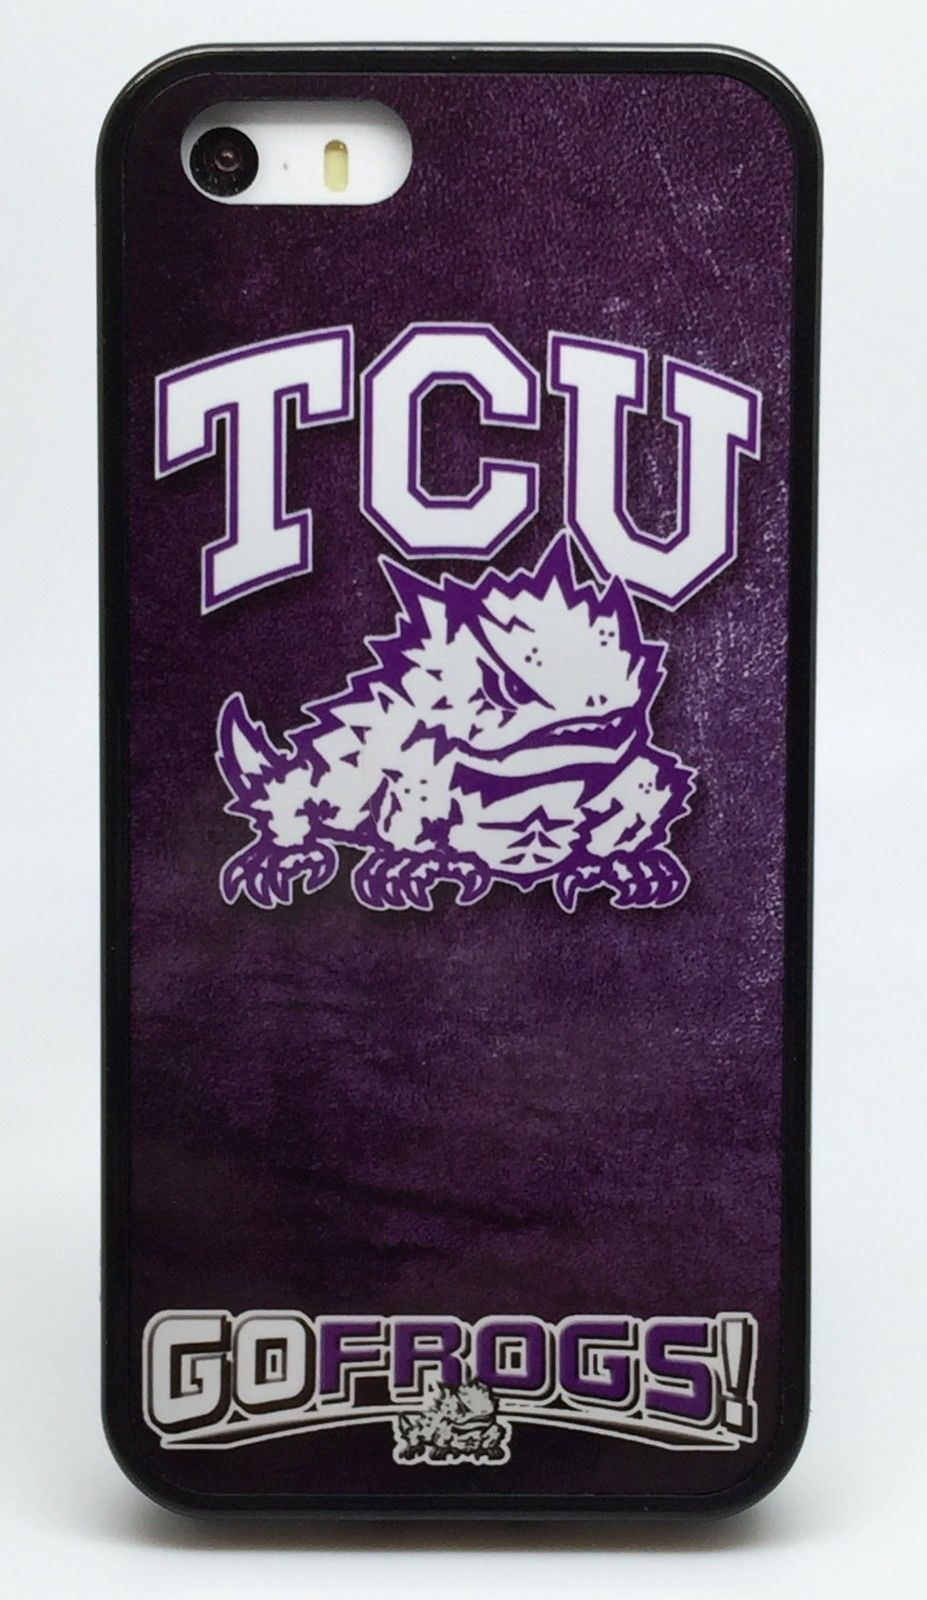 NEW TCU HORNED FROGS COLLEGE 2 FOR 1 PHONE CASE FOR iPHONE 7 6S 6 PLUS 5C 5 5S 4